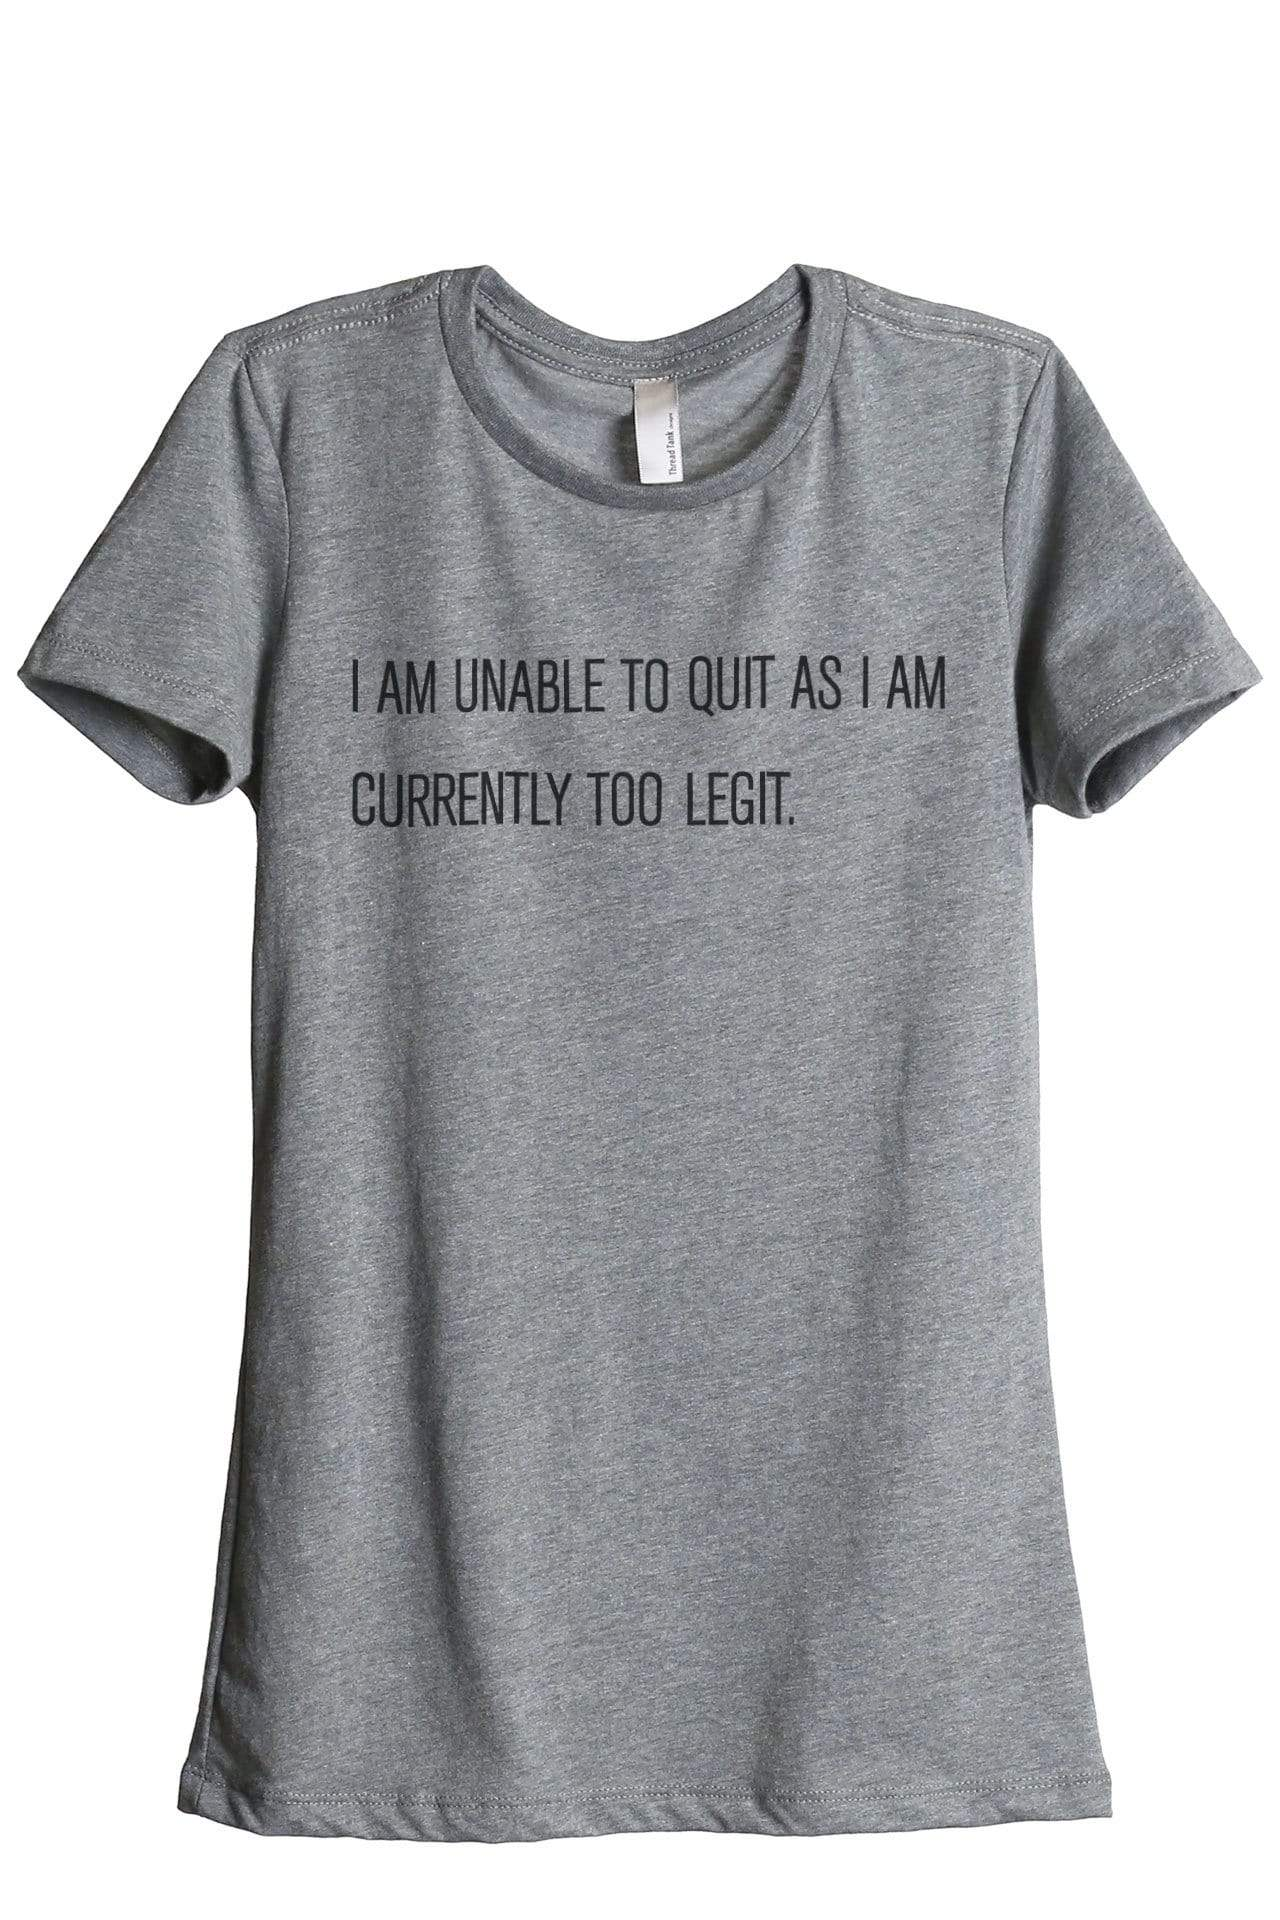 I Am Unable To Quit As I Am Currently Too Legit Women Heather Grey Relaxed Crew T-Shirt Tee Top